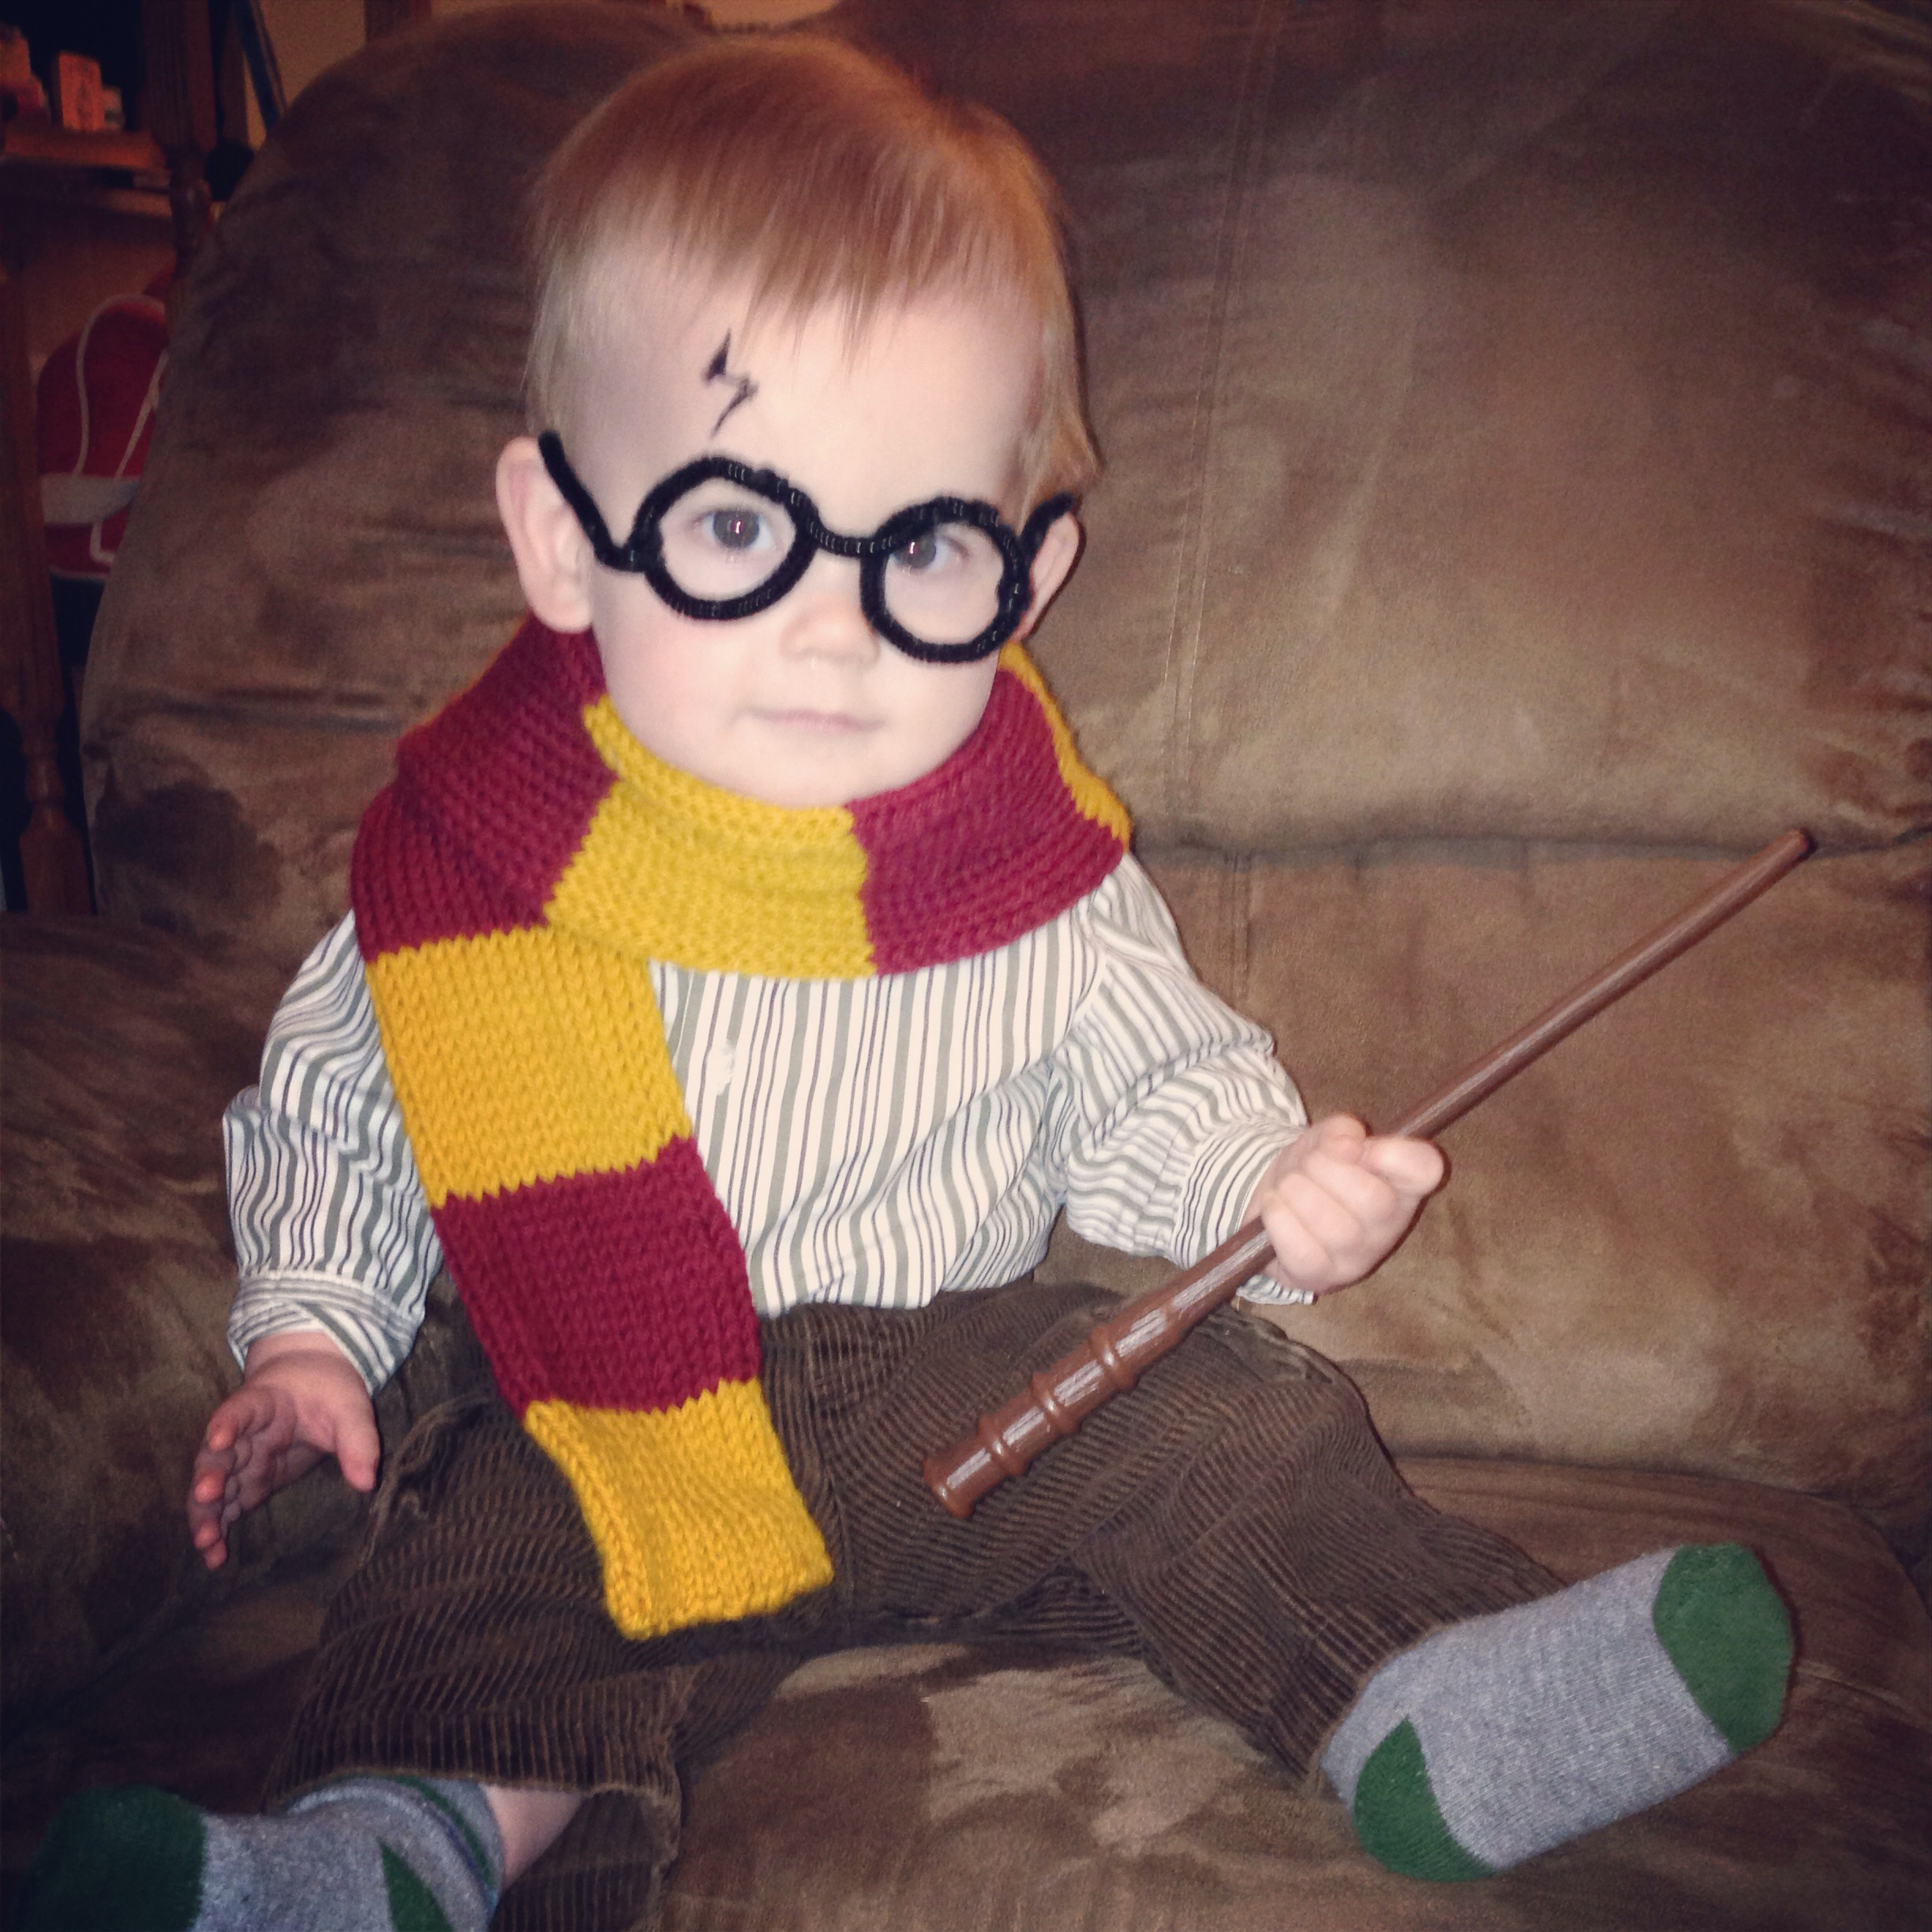 Drawn scarf child For Gryffindor Potter scarf Harry